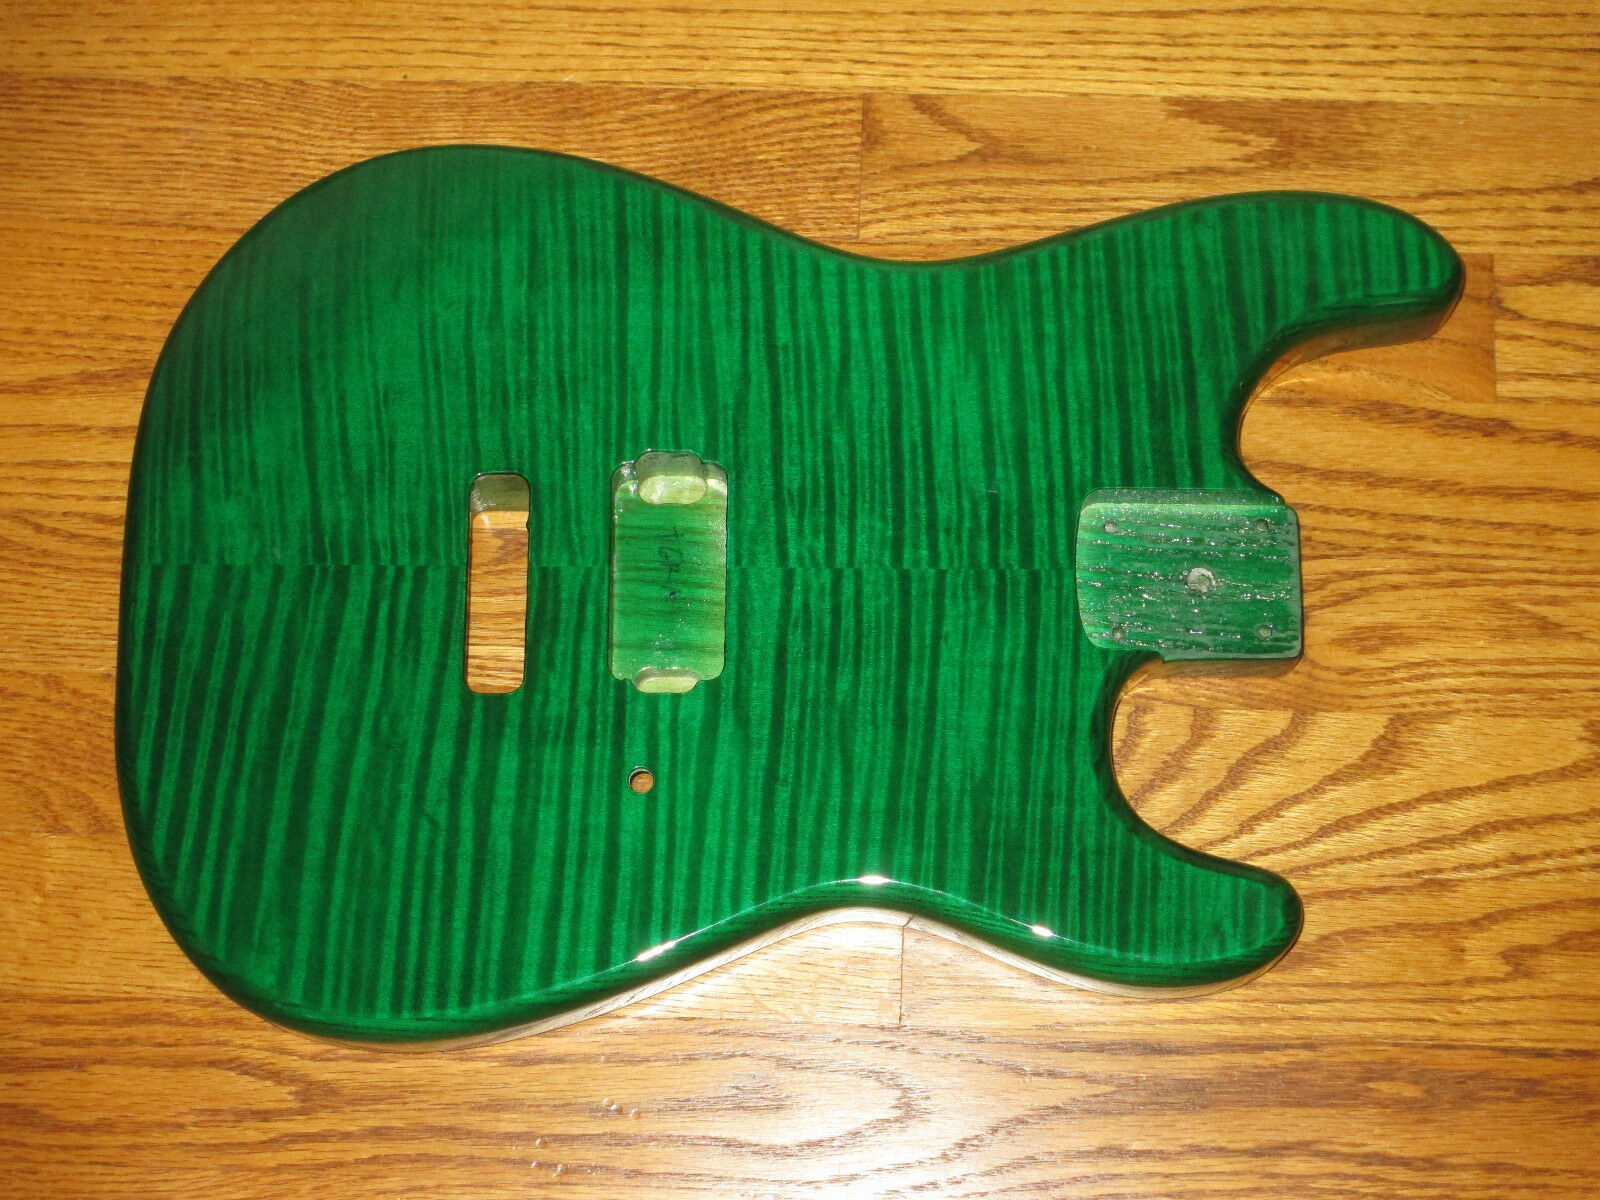 MIGHTY MITE BODY FITS FENDER STRATOCASTER 2 3 16th GUITAR NECK Grün FLAME TOP